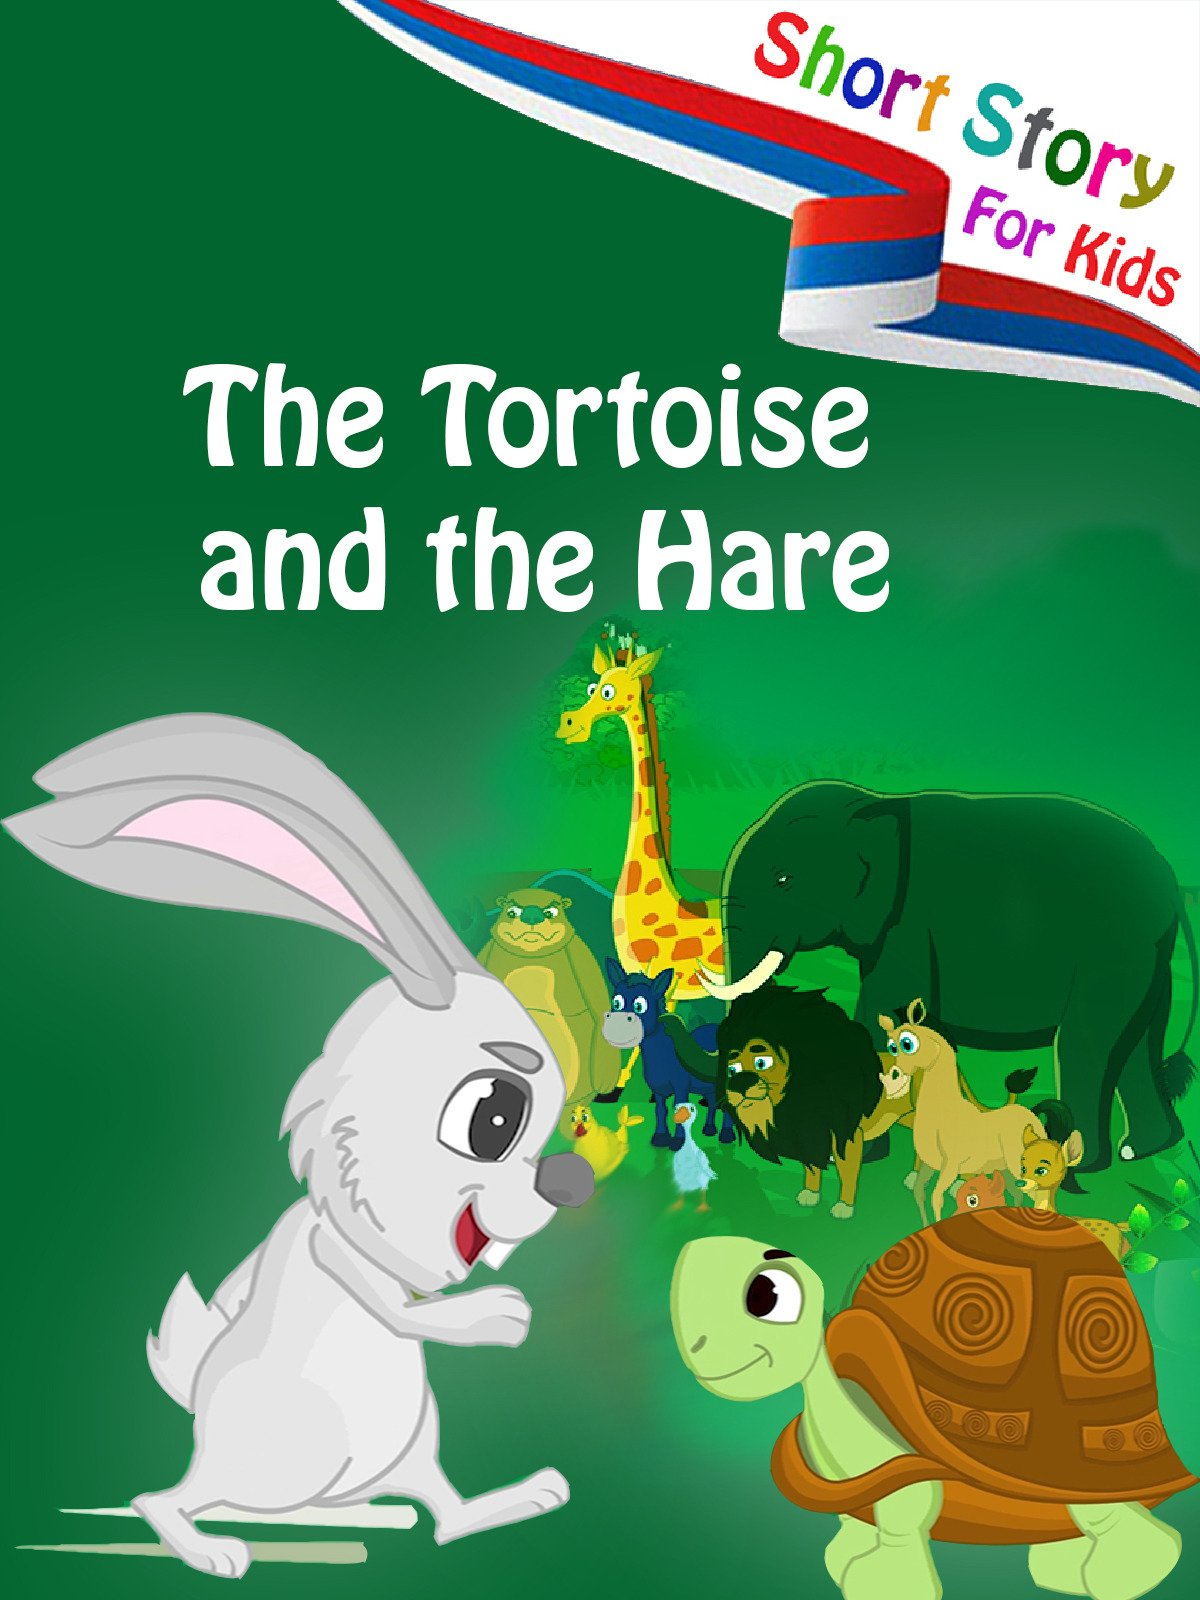 Amazon Com Watch Short Stories For Kids The Tortoise And The